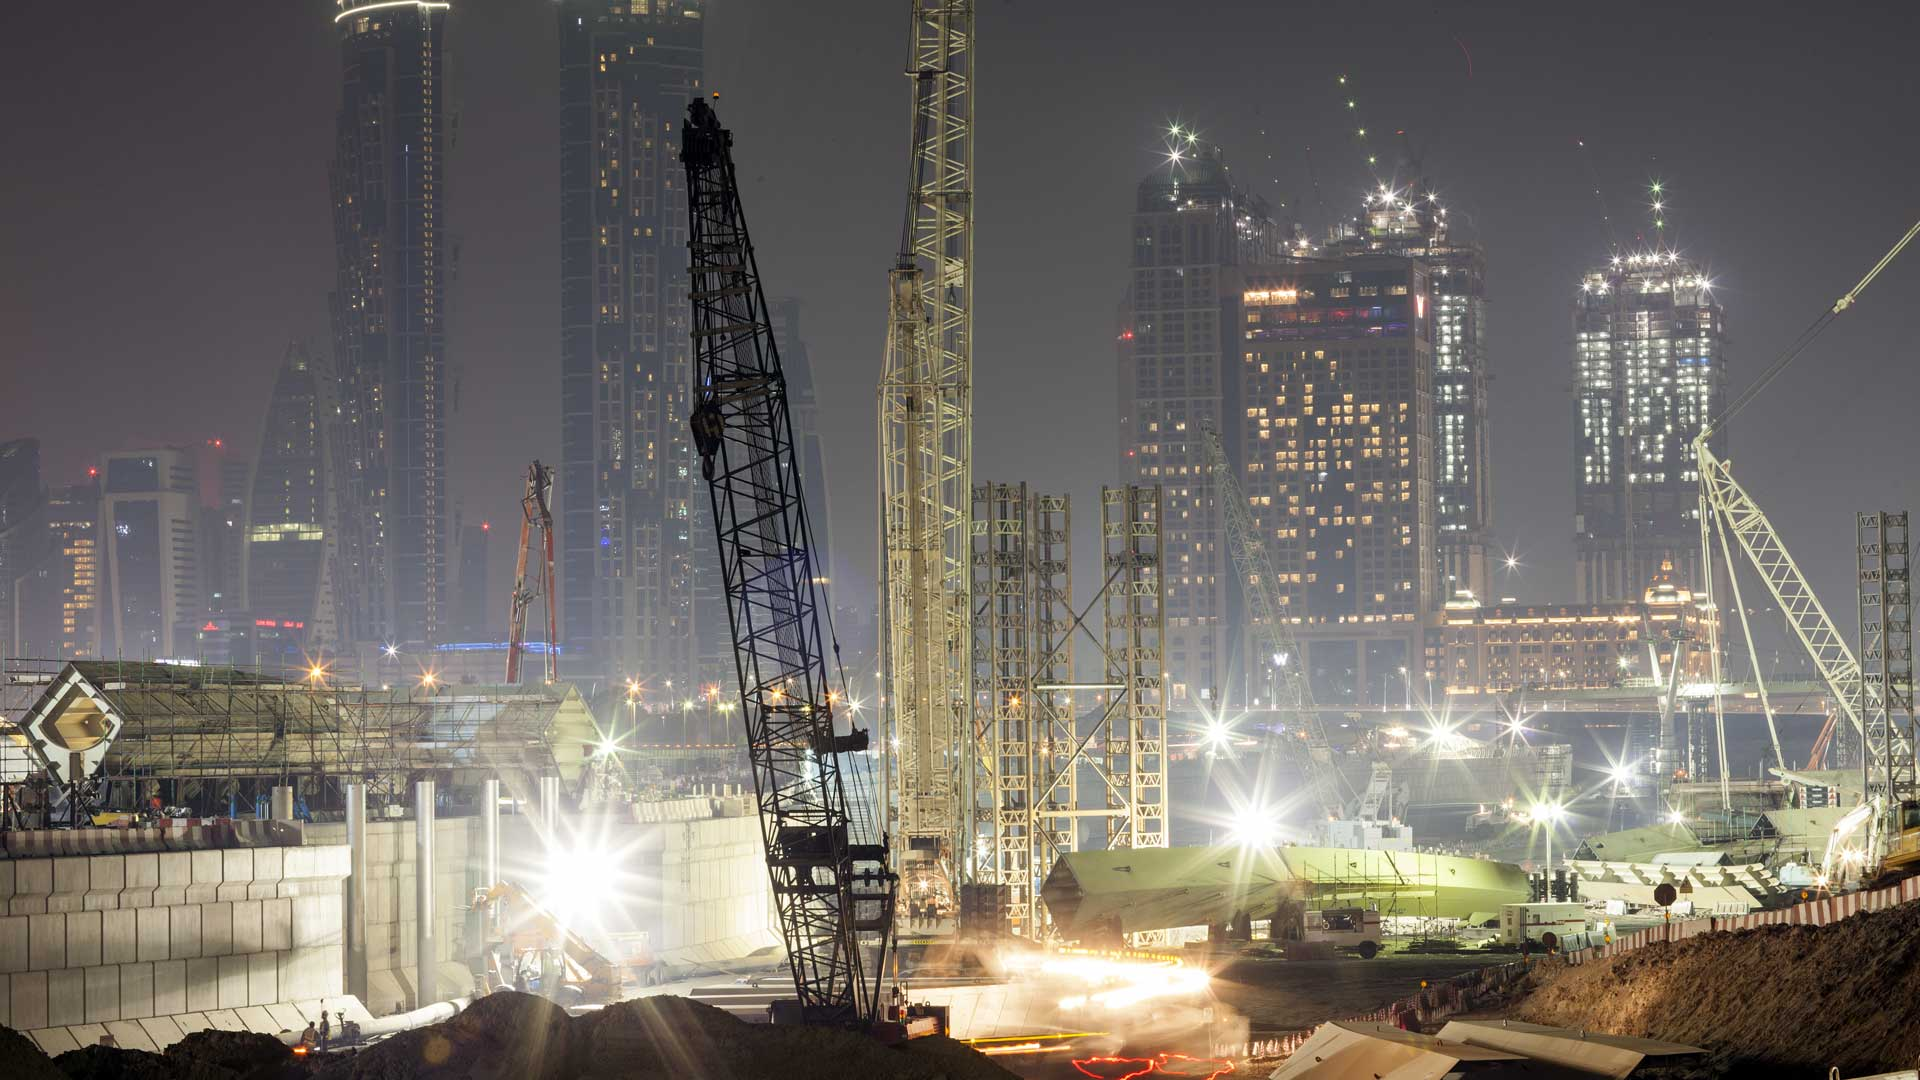 Digital Marketing For Property and Construction Industries